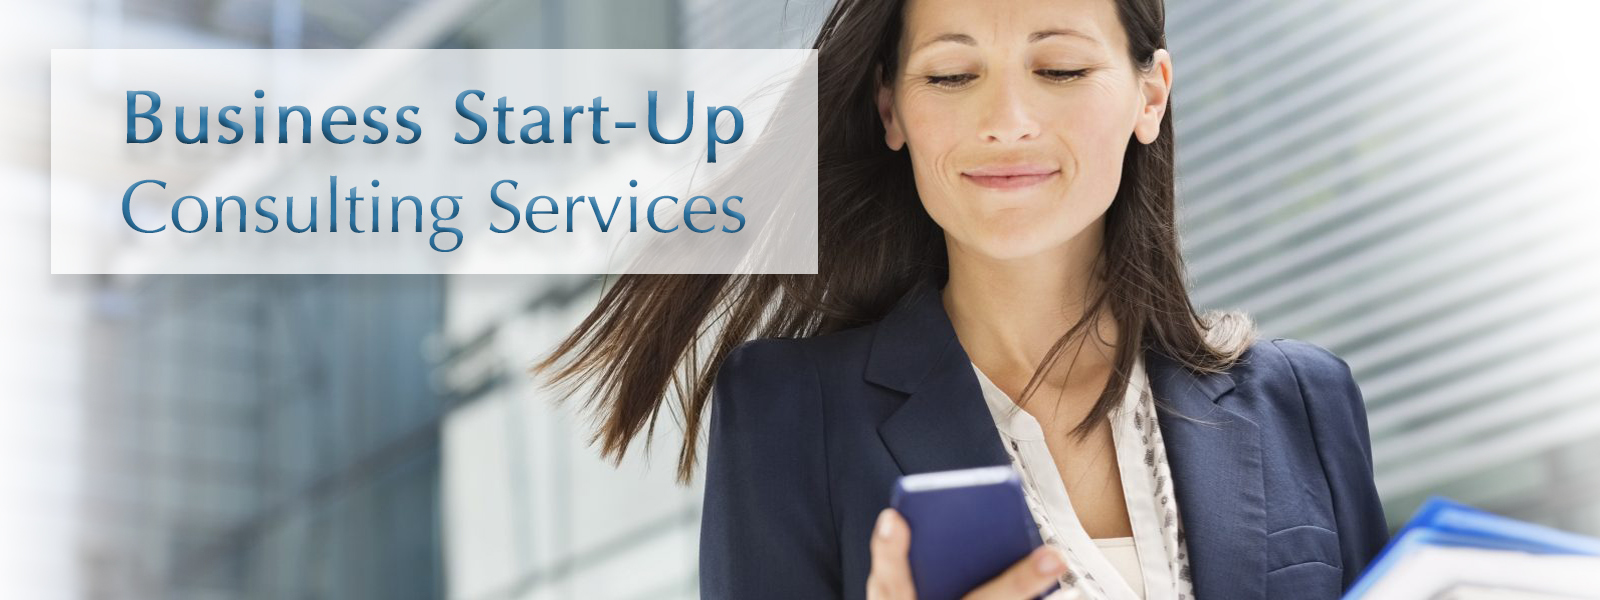 Camelot Enterprises, LLC - est. 1994 | Professional Business Start-Up Consultation Services